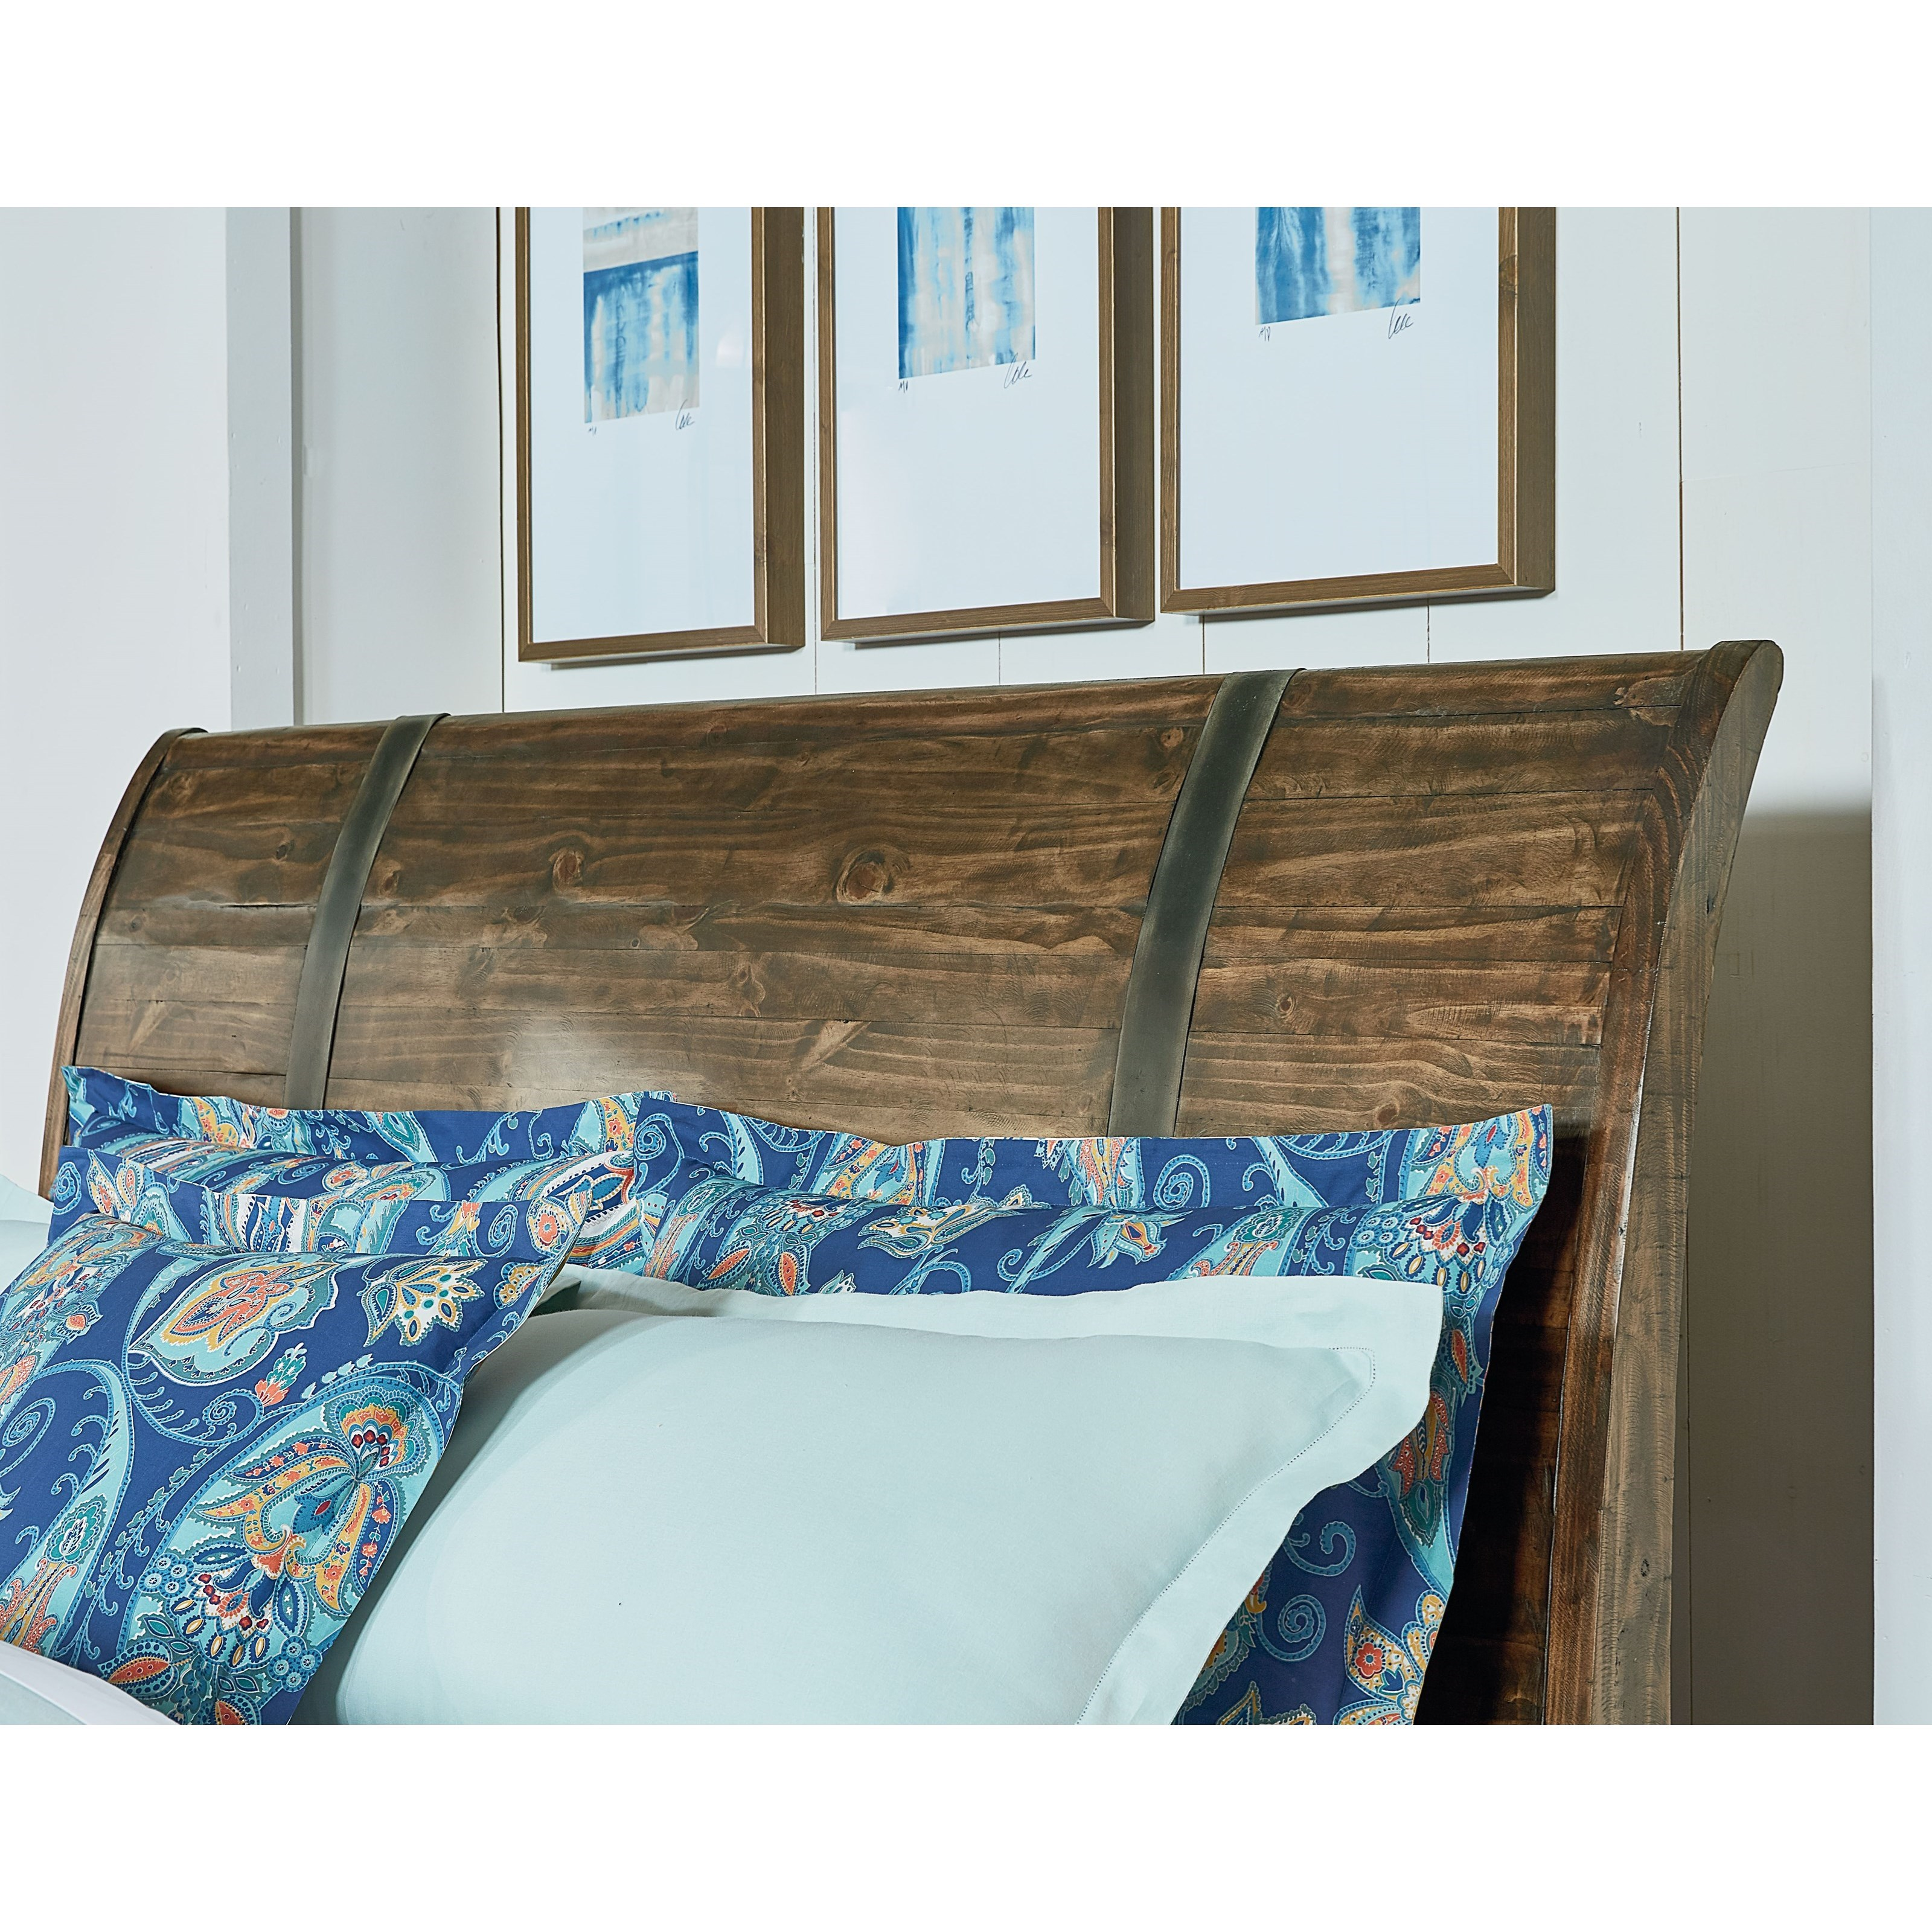 Standard Furniture Nelson Rustic King Sleigh Bed Jacksonville Furniture Mart Sleigh Beds